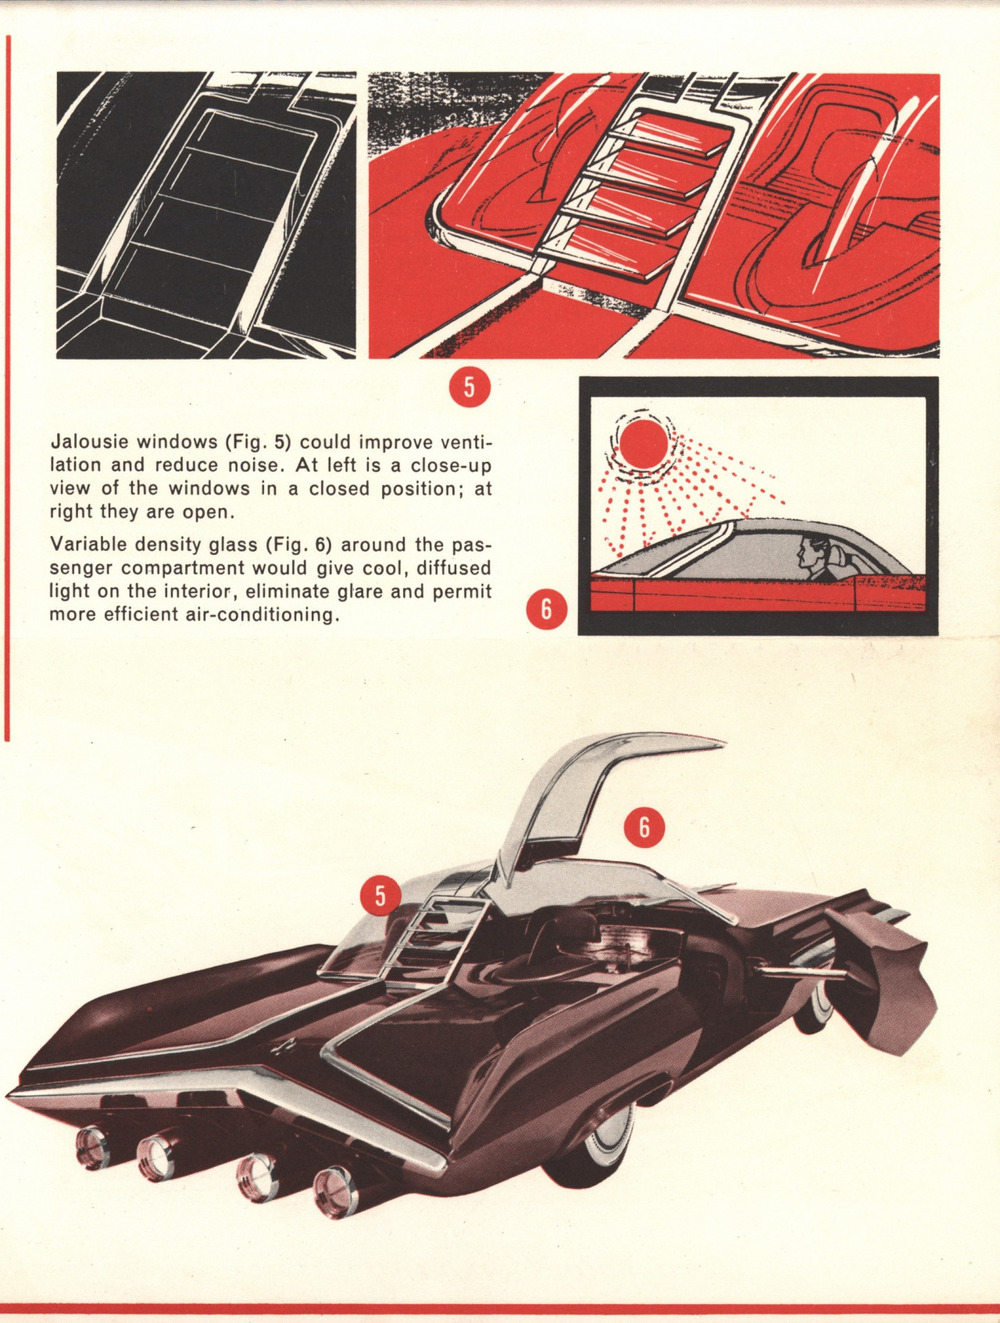 Ford-Seattle-ite-XXI-Concept-Brochure-1962-05.jpg